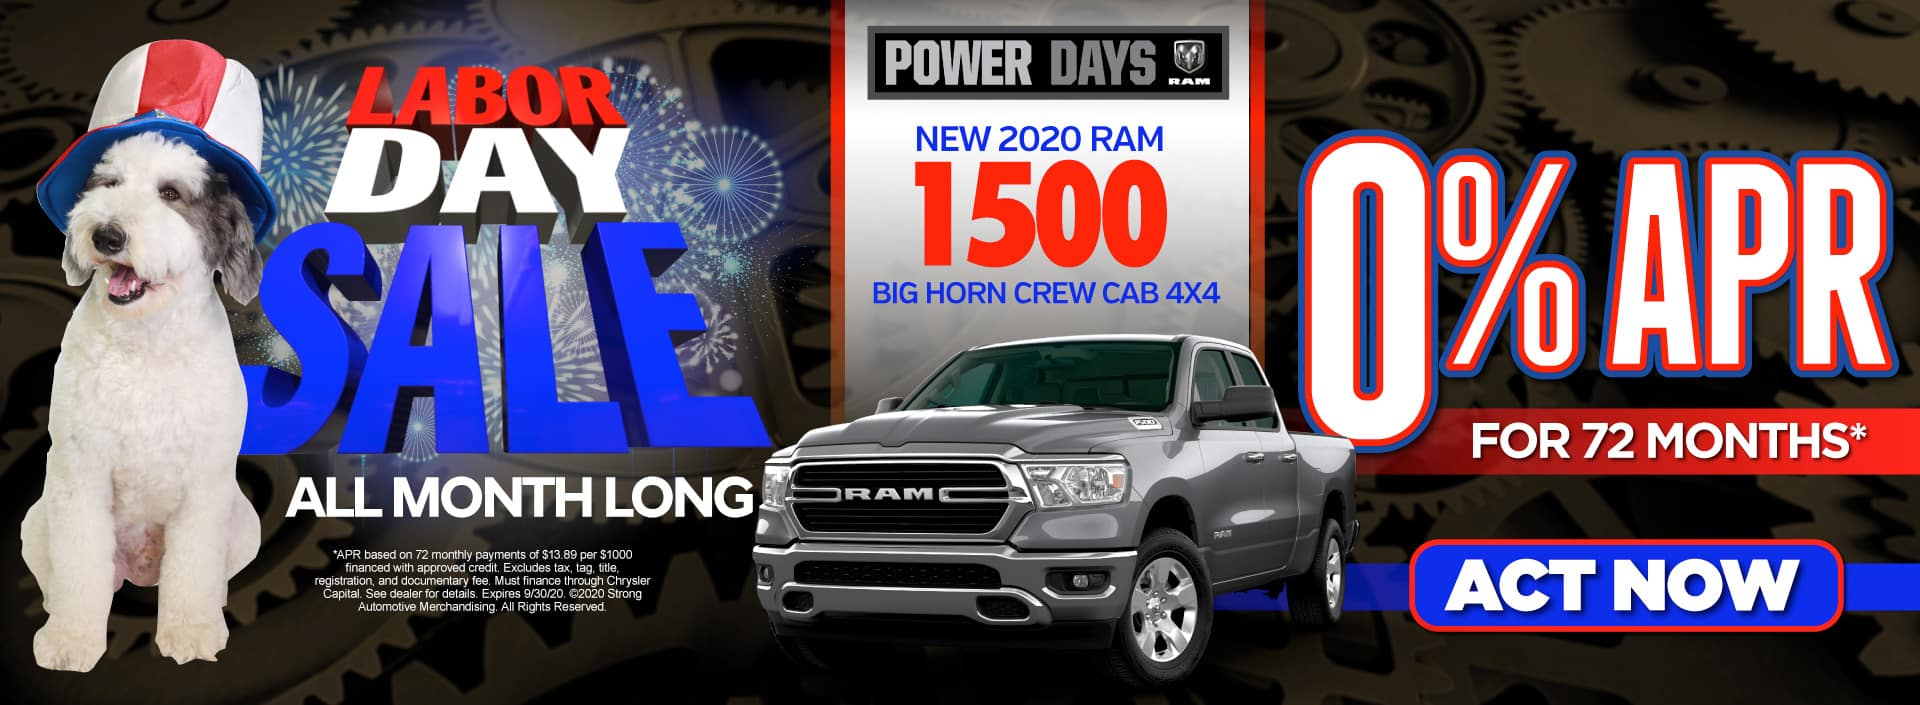 New 2020 Ram 1500 - 0% APR for up to 72 months - Act Now